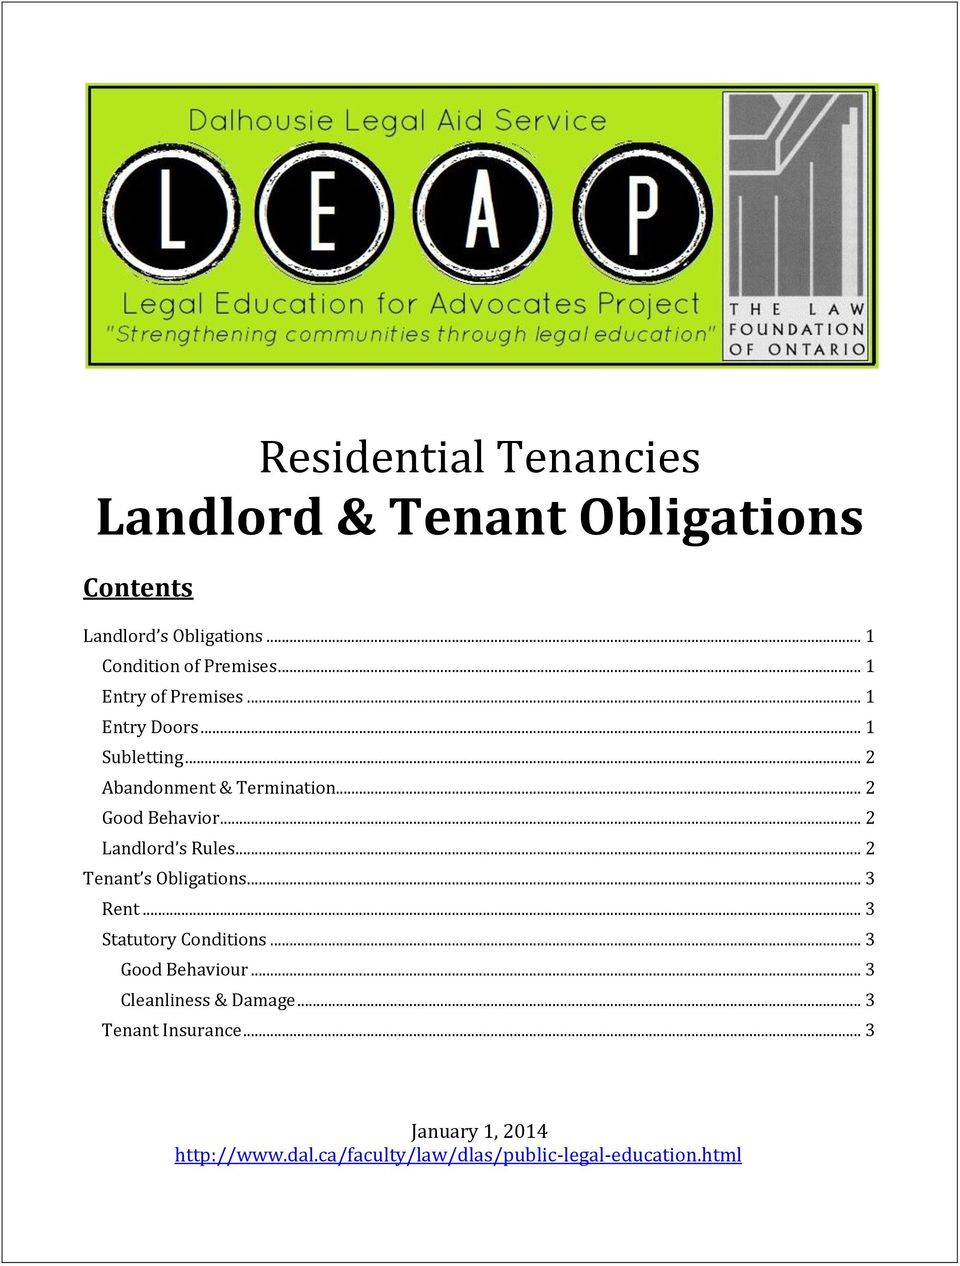 .. 2 Landlord s Rules... 2 Tenant s Obligations... 3 Rent... 3 Statutory Conditions... 3 Good Behaviour.